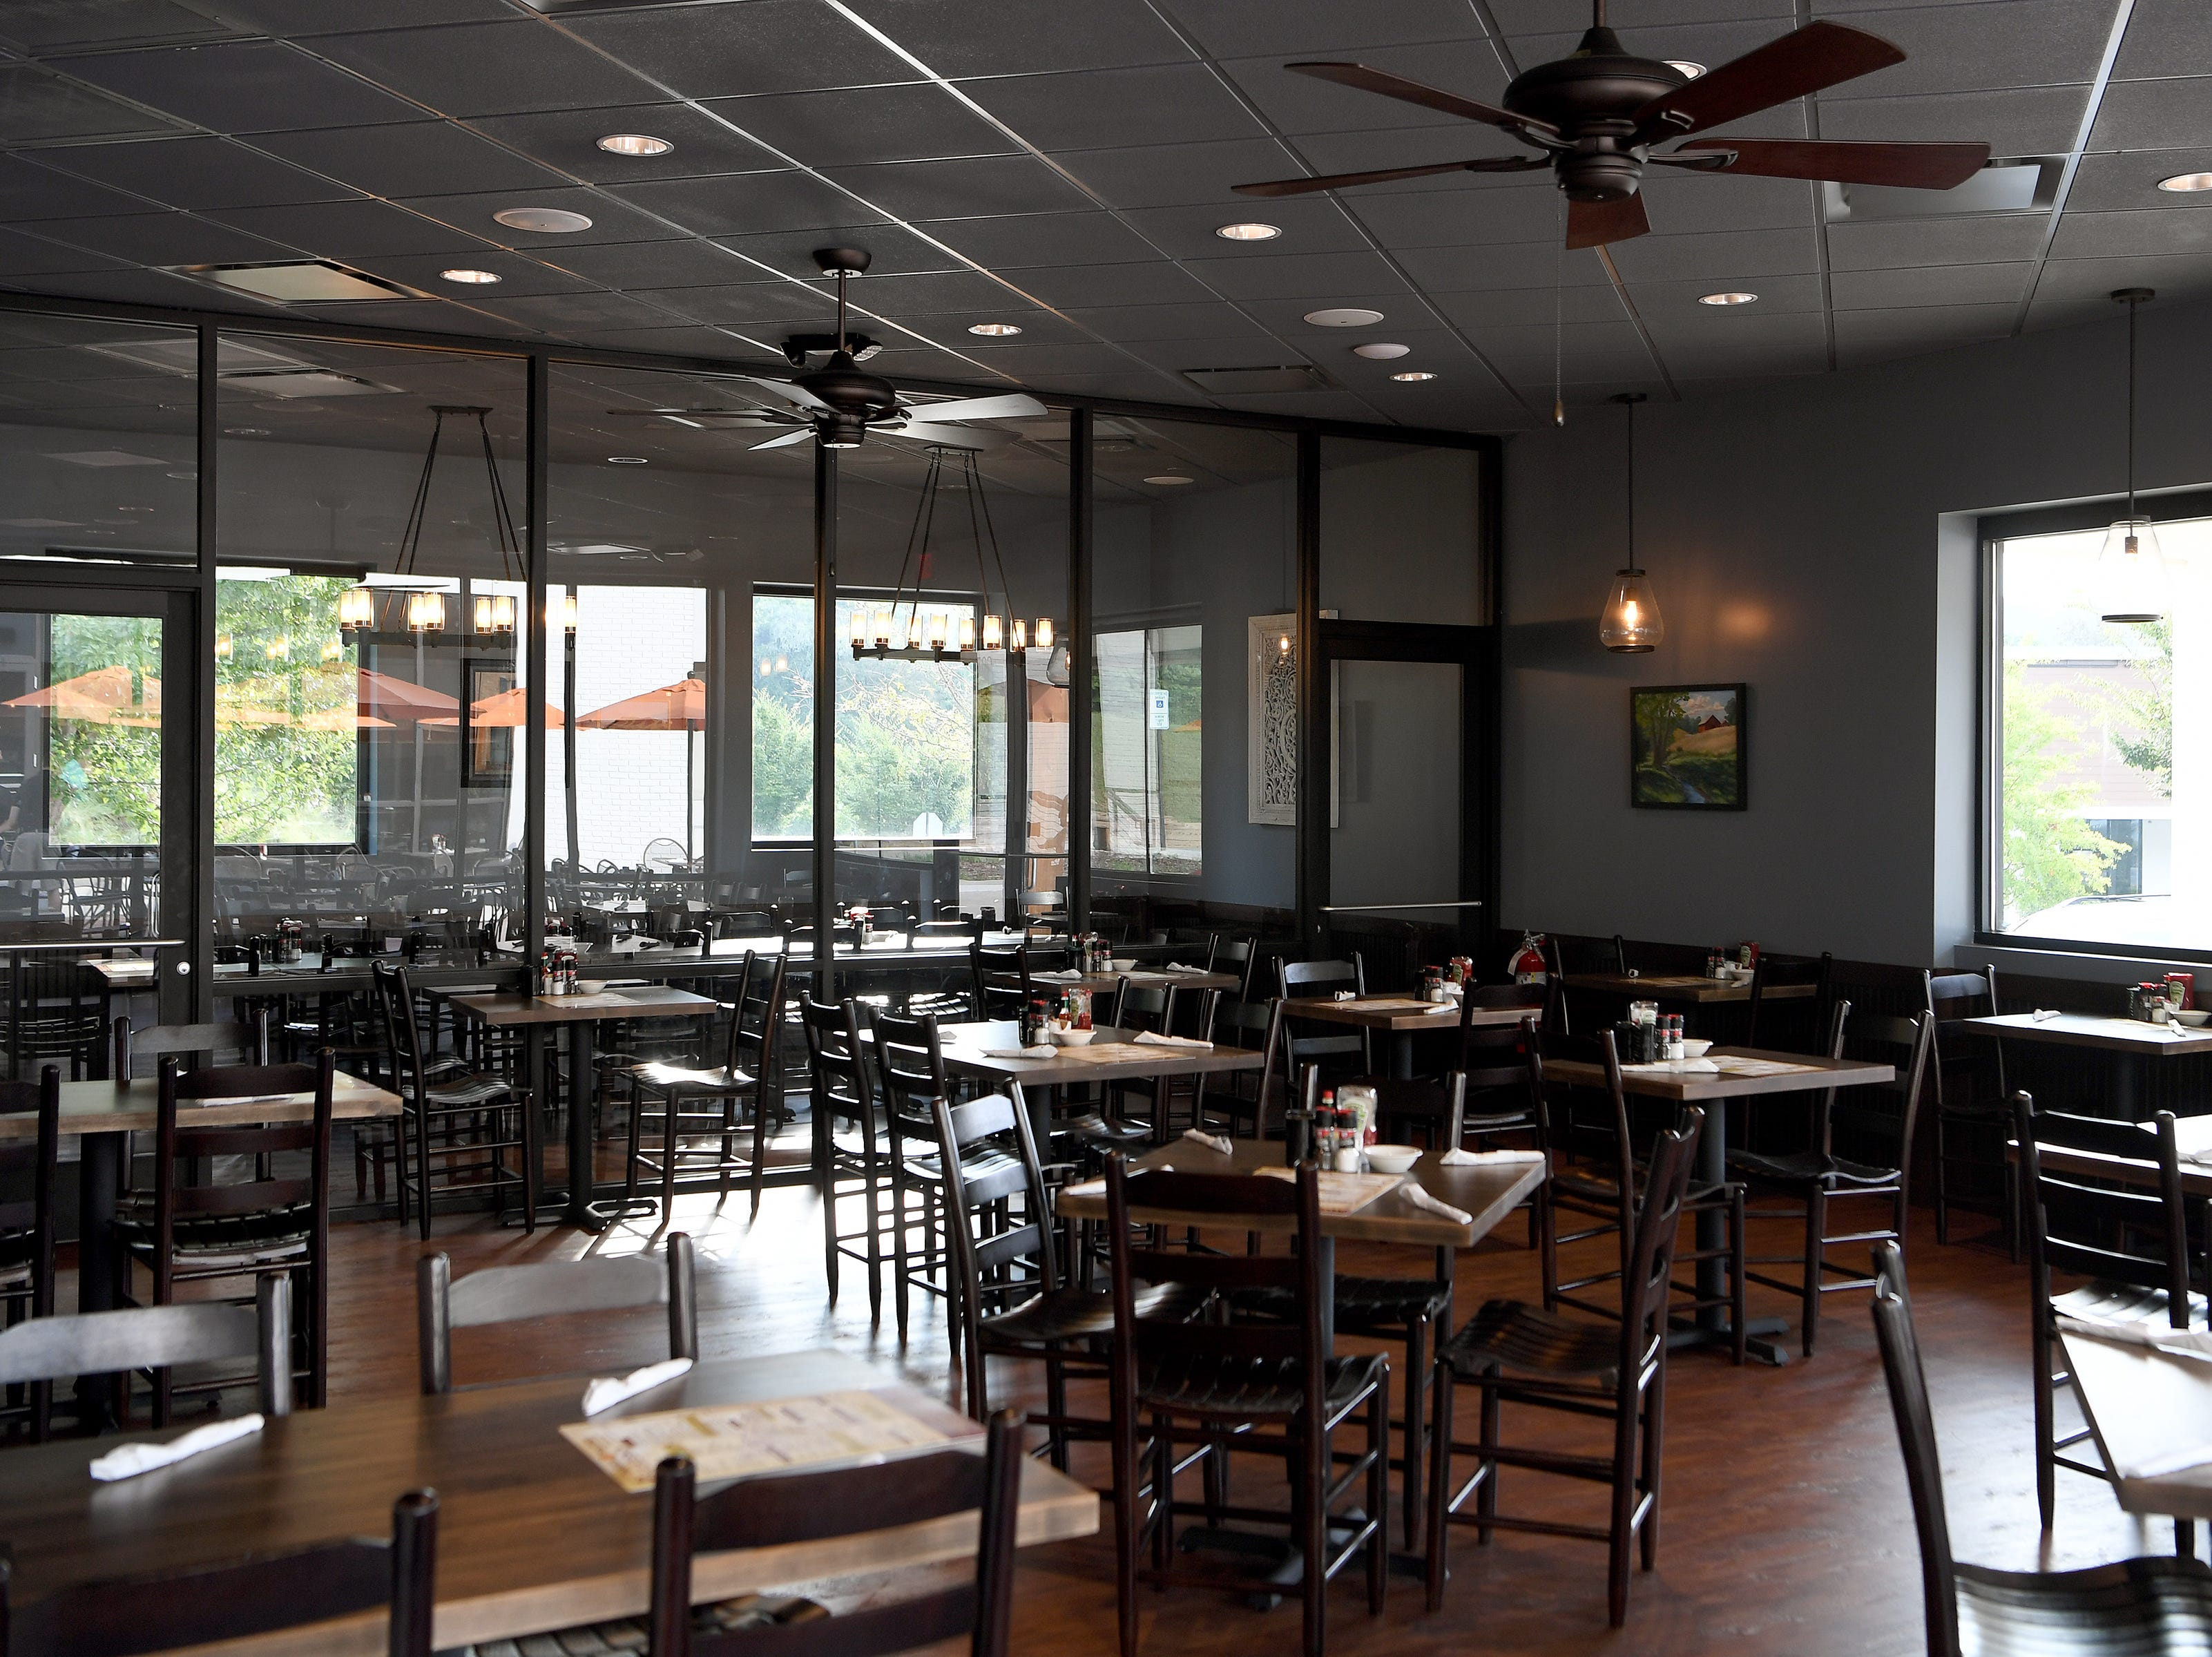 Famous Toastery, a franchise started in Huntersville, North Carolina, has opened in East Asheville in the shopping plaza with Whole Foods and features both indoor and outdoor dining.